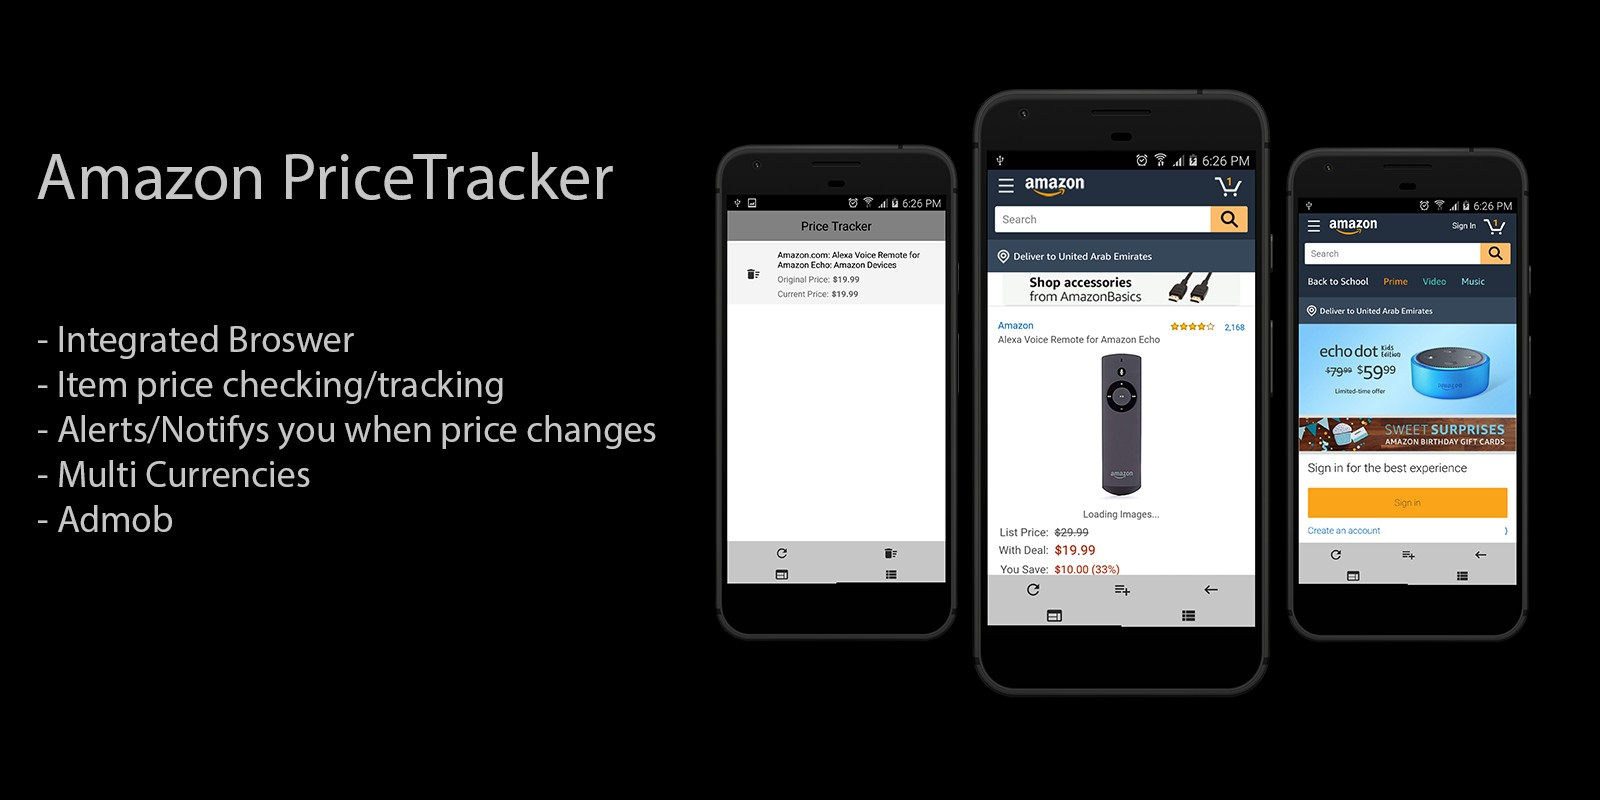 Amazon Price Tracker - Android App Source Code